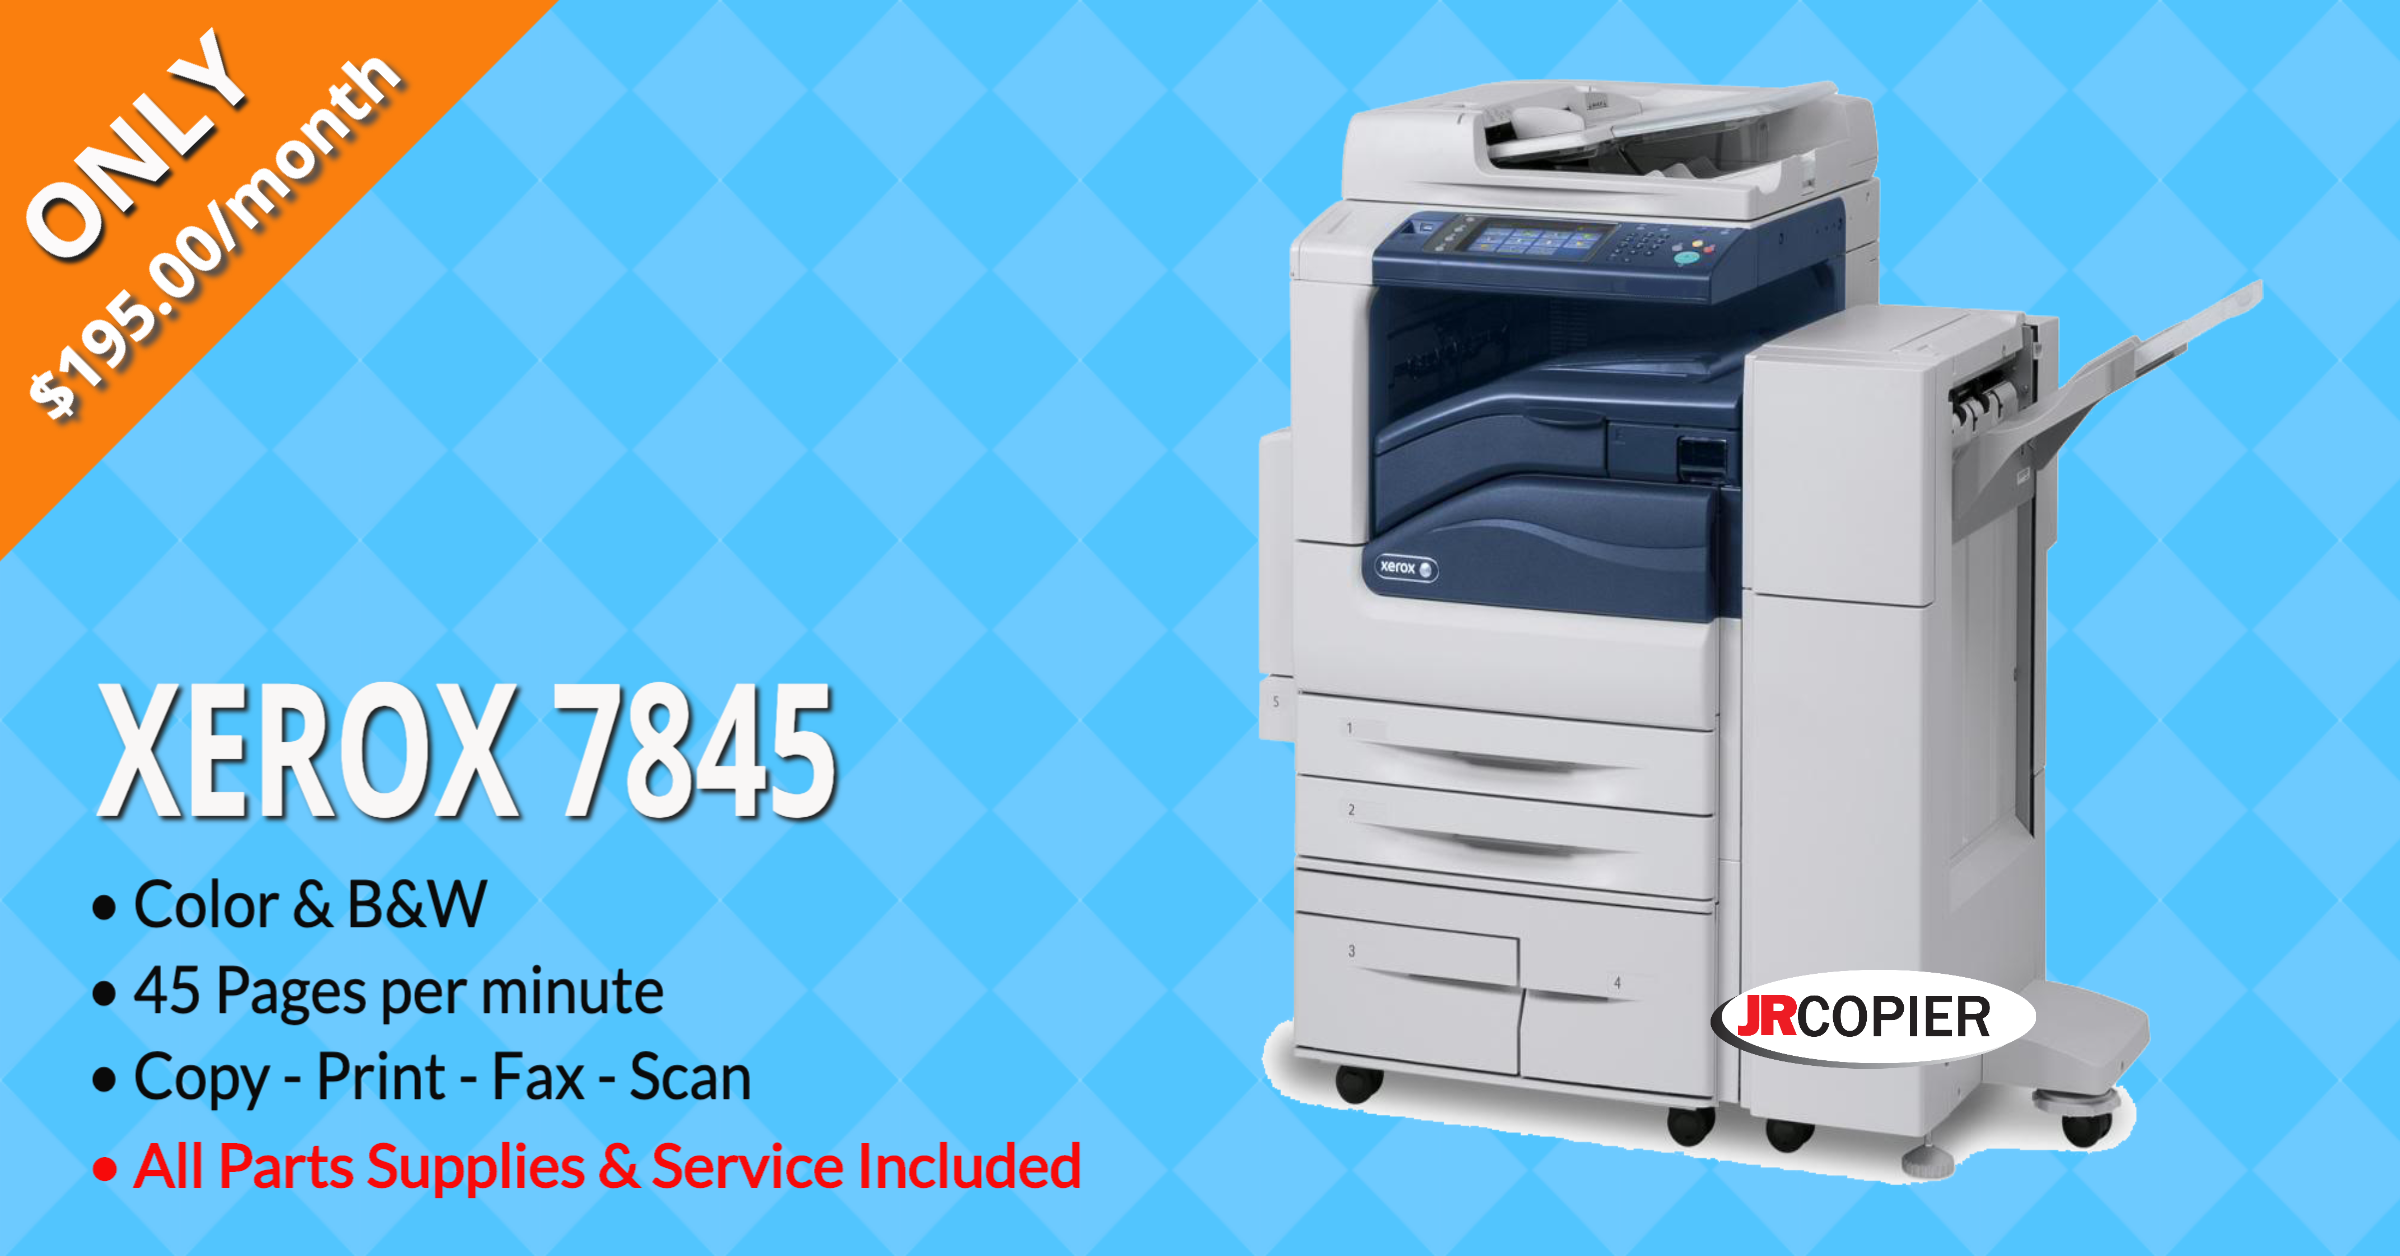 Copy Machine Leasing 01347, 01349, 01351, 01376